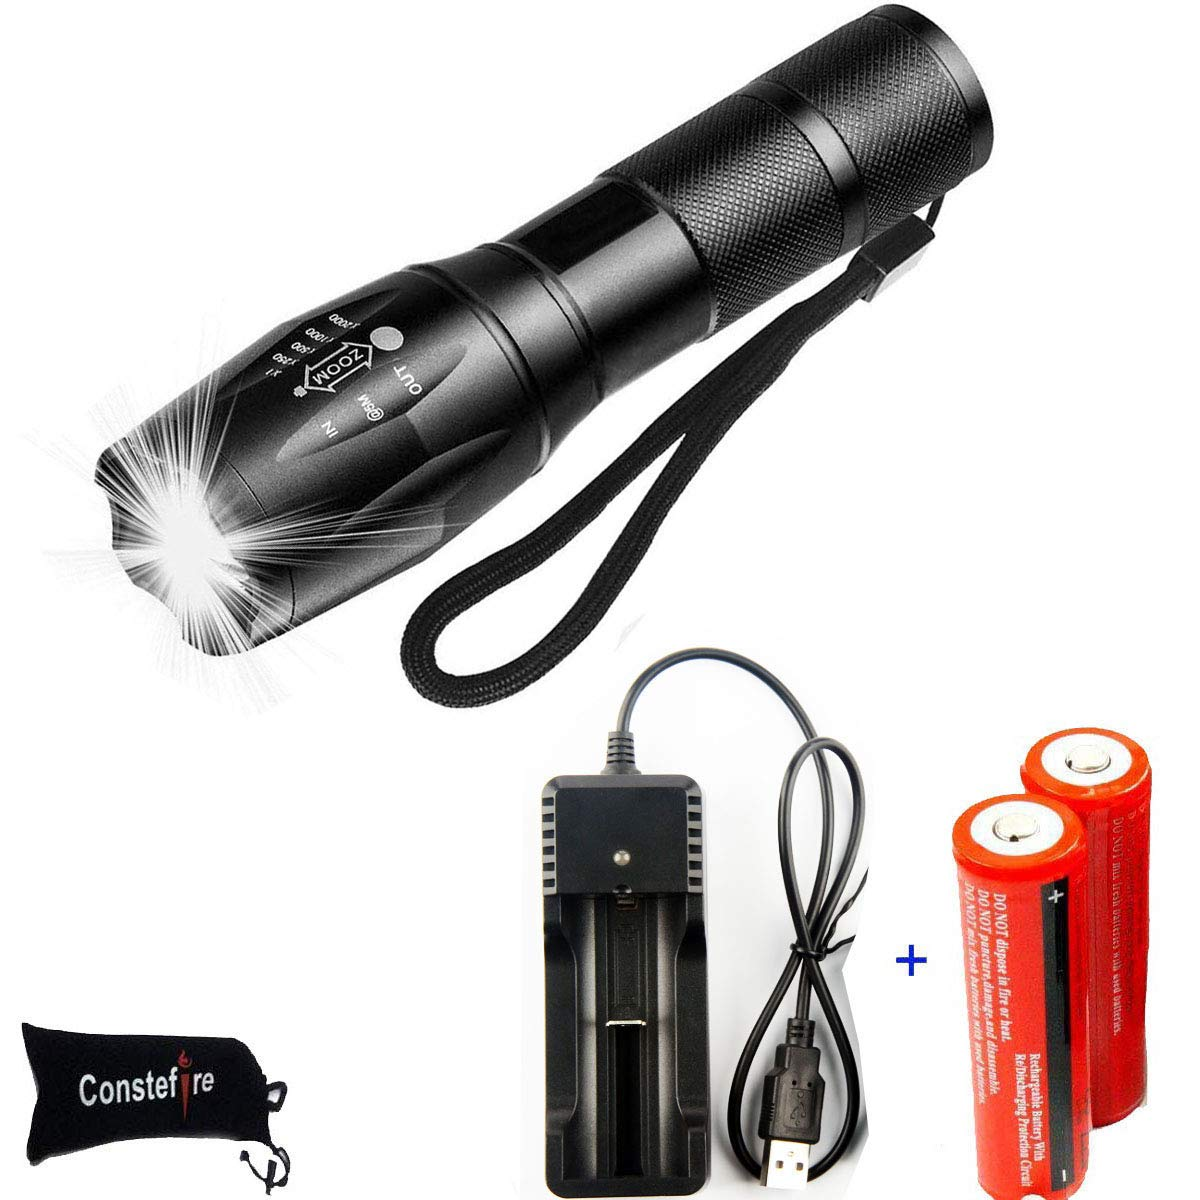 Flashlight Constefire Rechargeable Adjustable Emergency